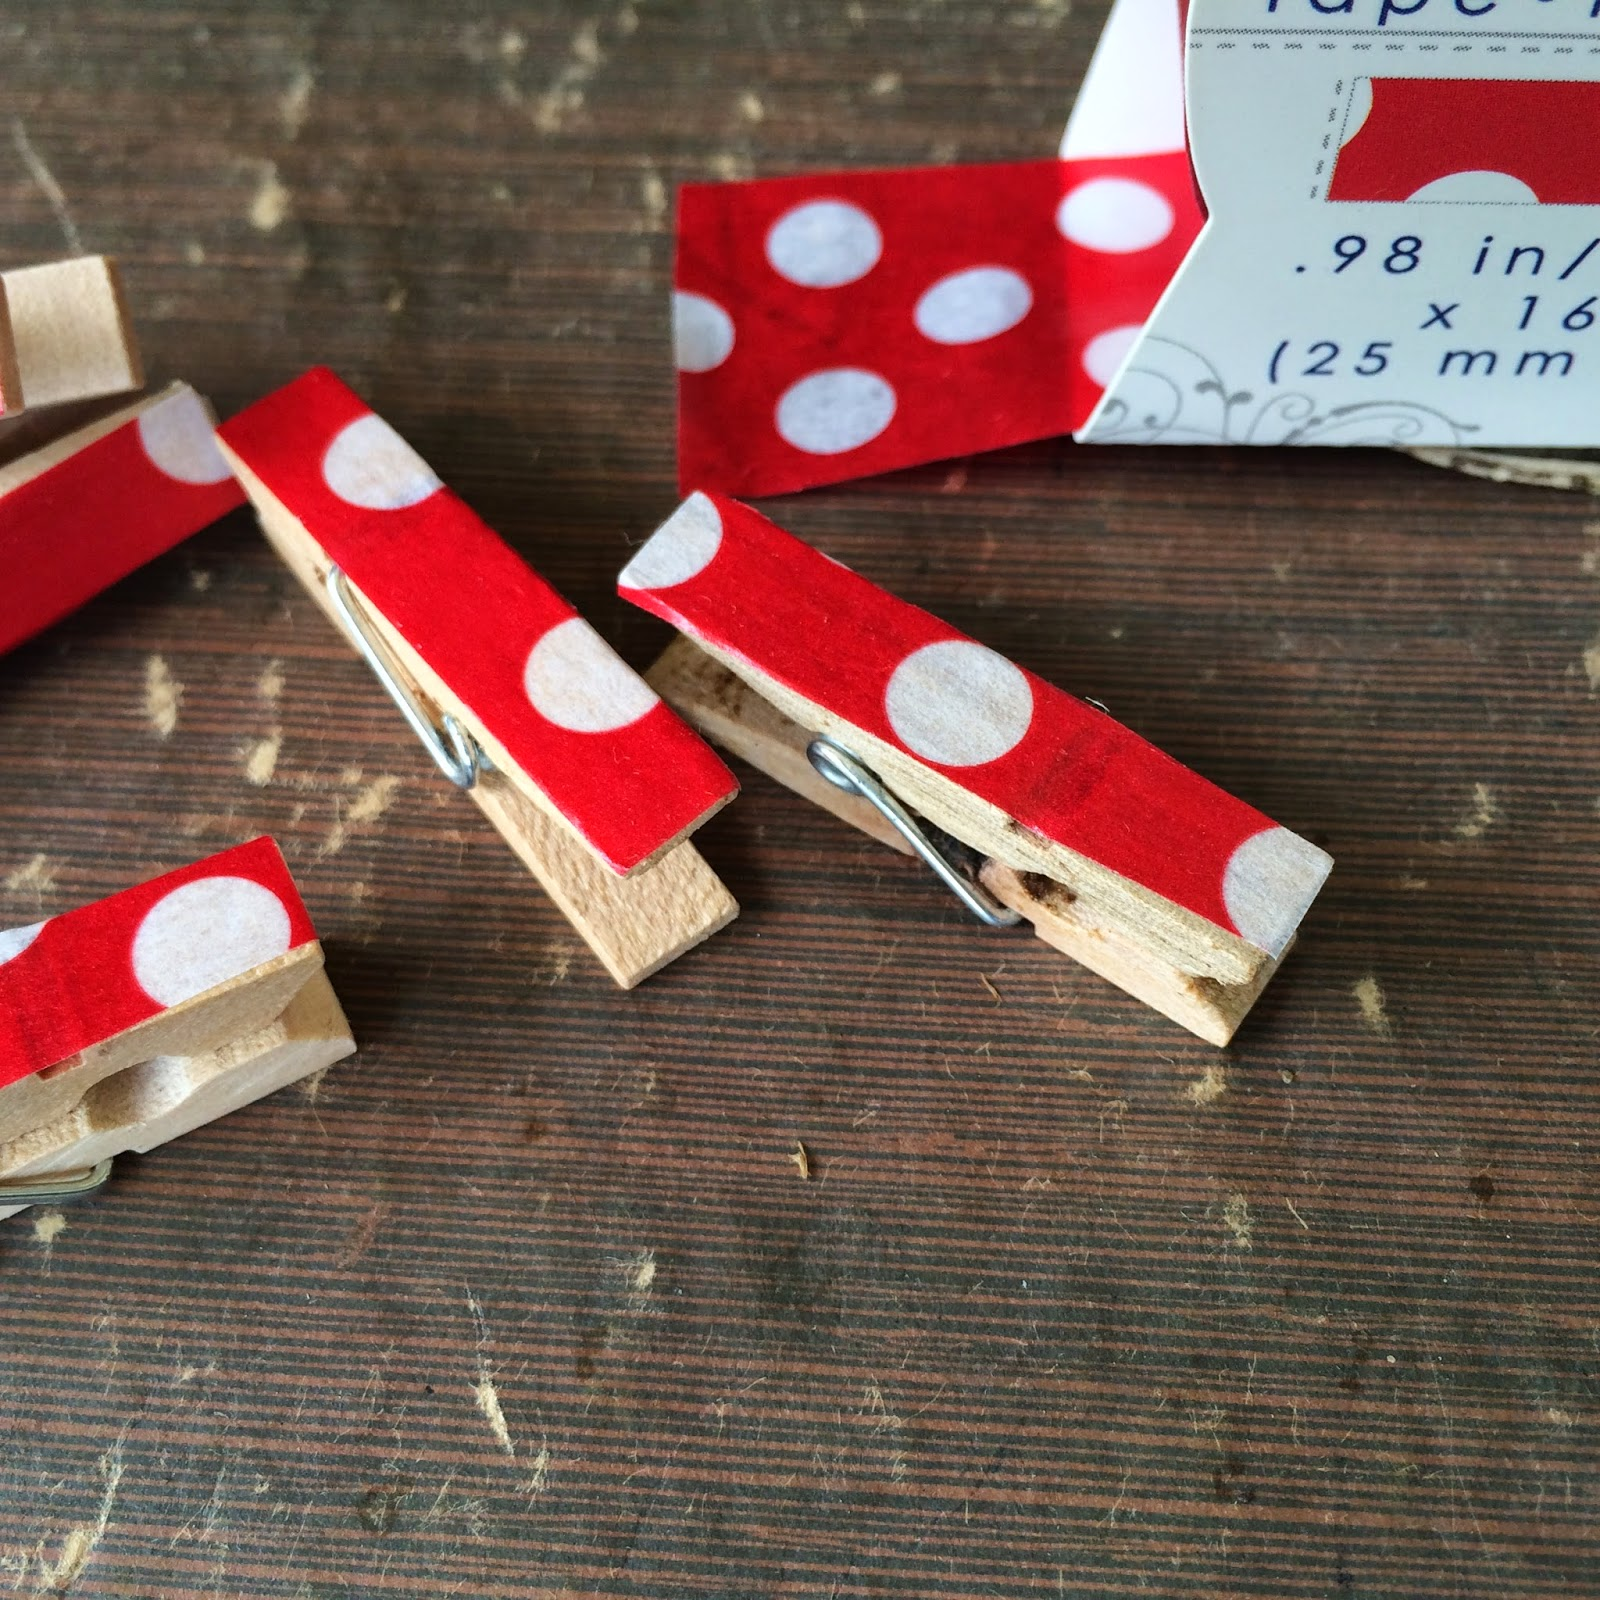 Washi tape DIY projects outside the box papers